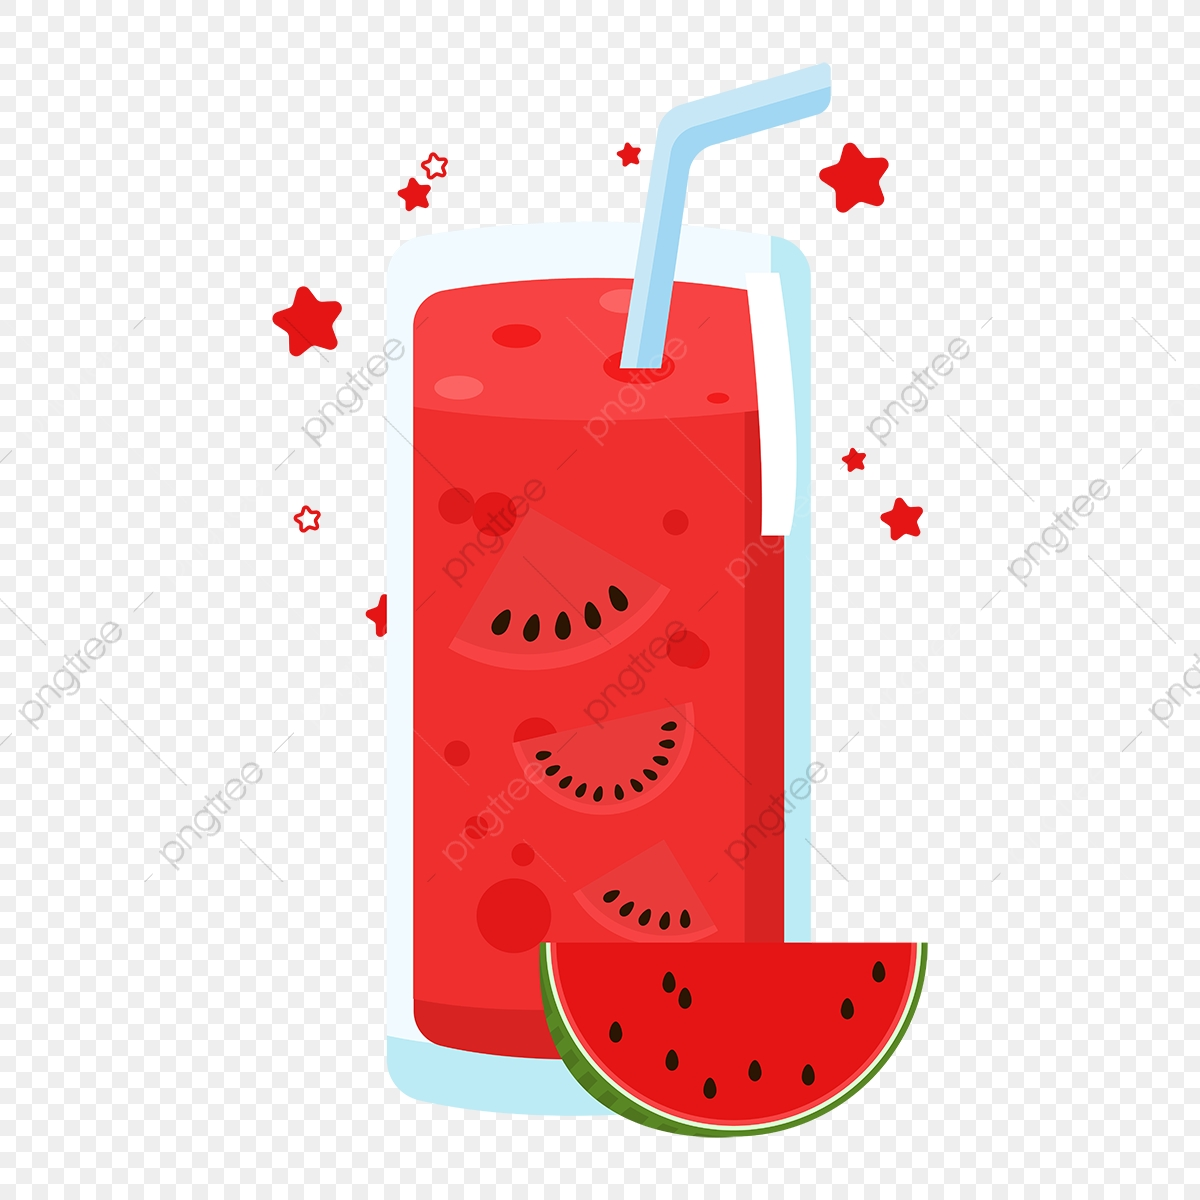 Red cartoon hand painted. Watermelon clipart juices